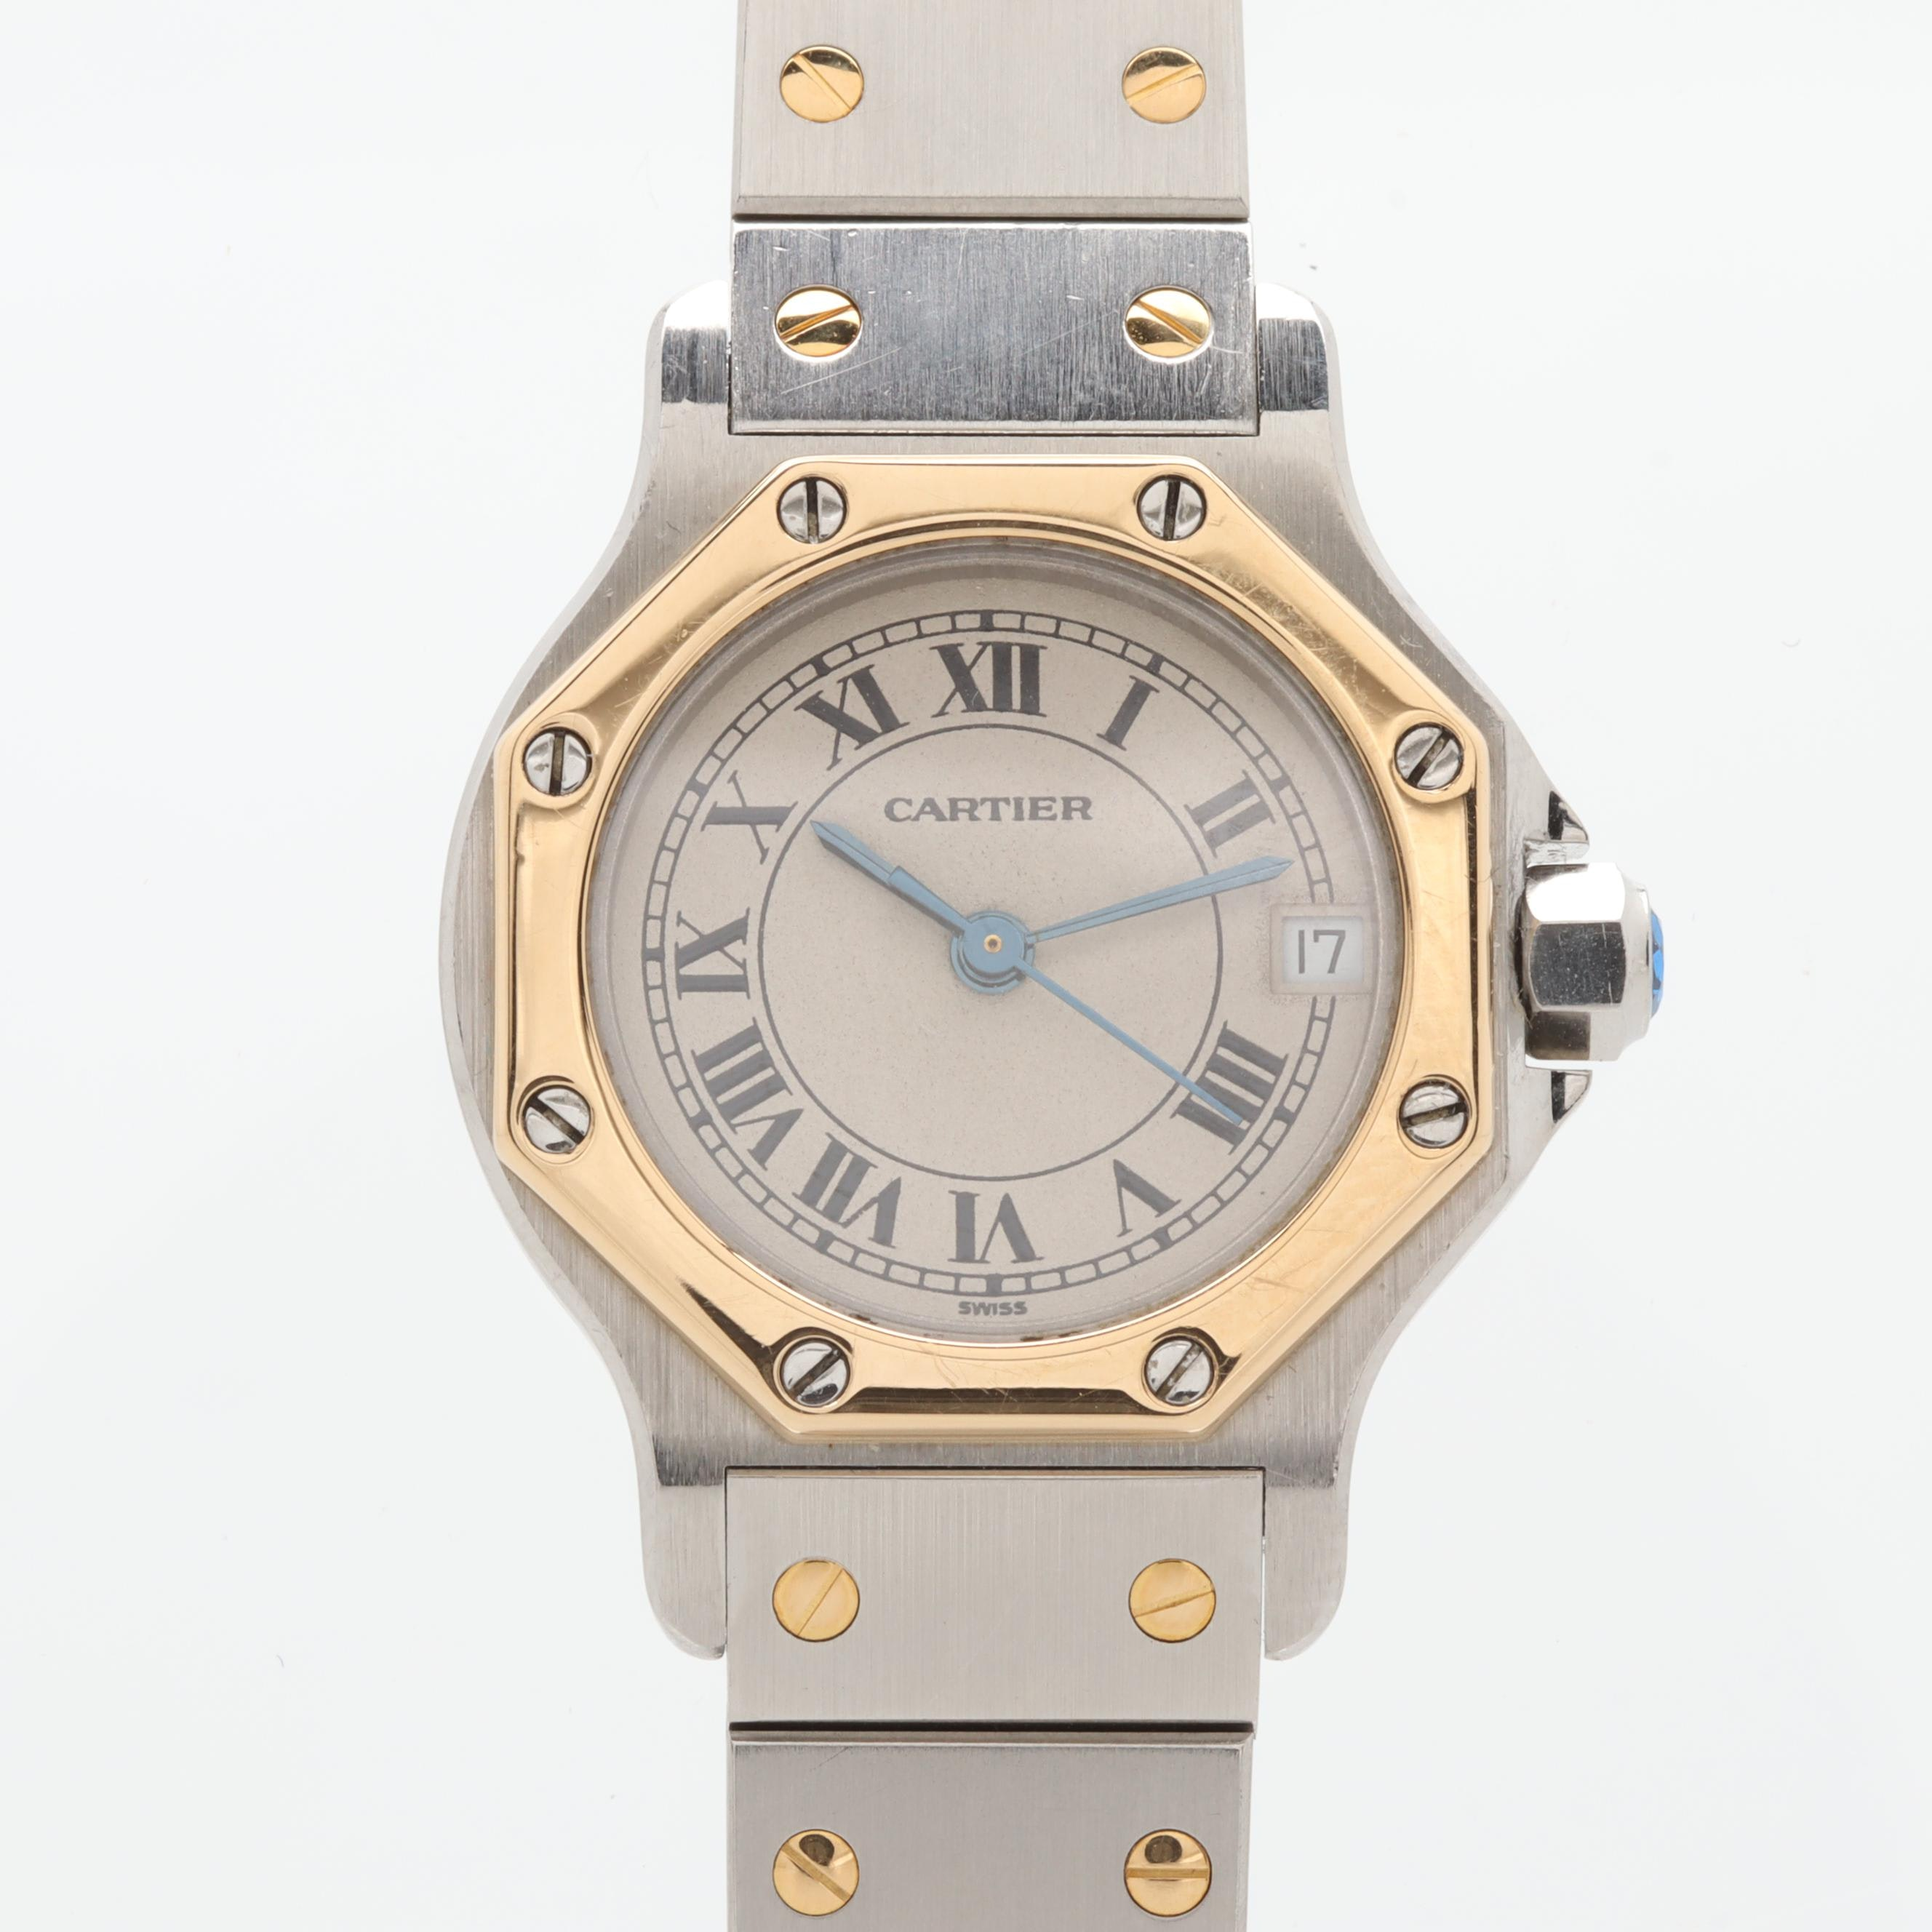 Cartier Santos 18K Yellow Gold and Stainless Steel Quartz with Date Wristwatch